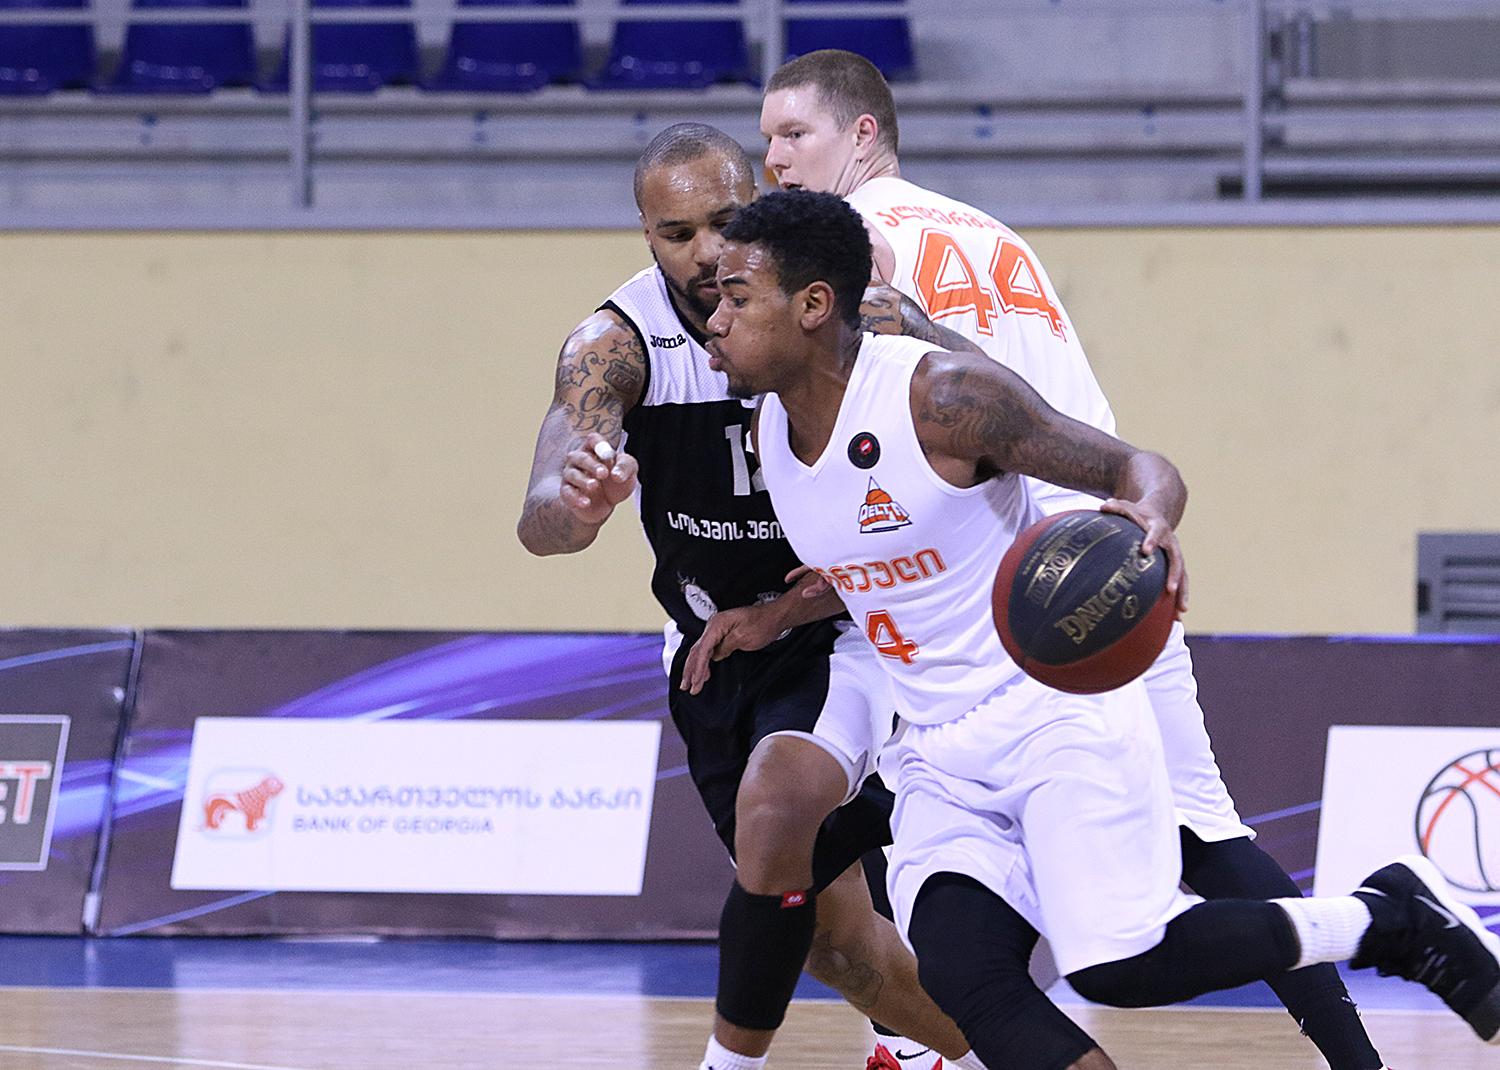 Delta wins against Sokhumi in the last minutes